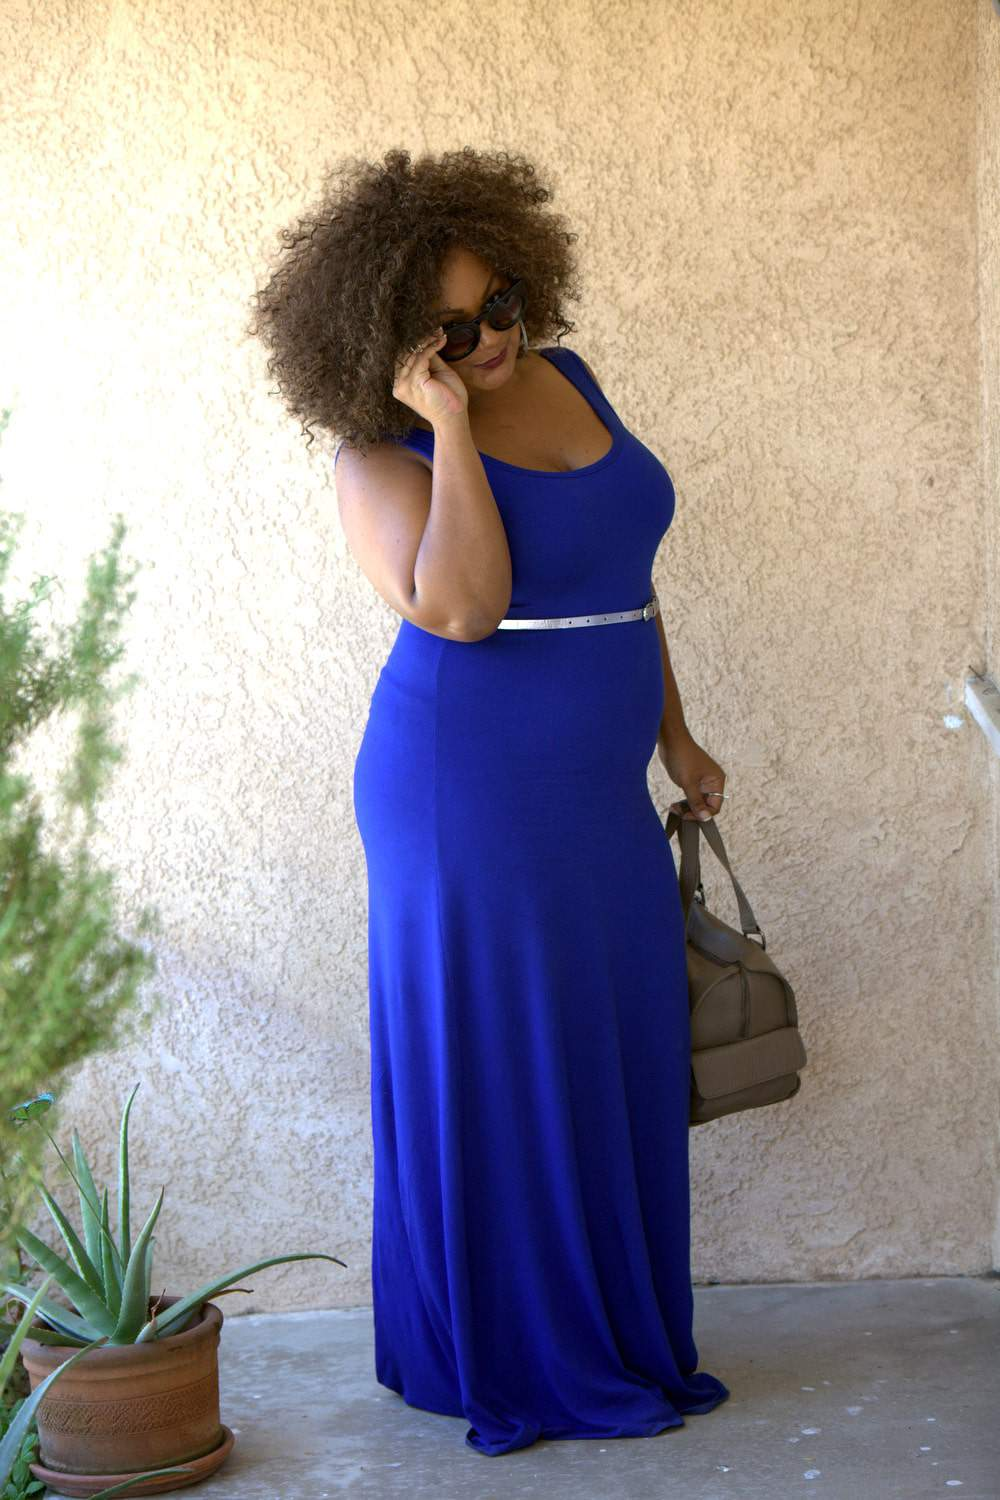 #ZapposStyle- What I Would Rock for Fourth of July at Zappos